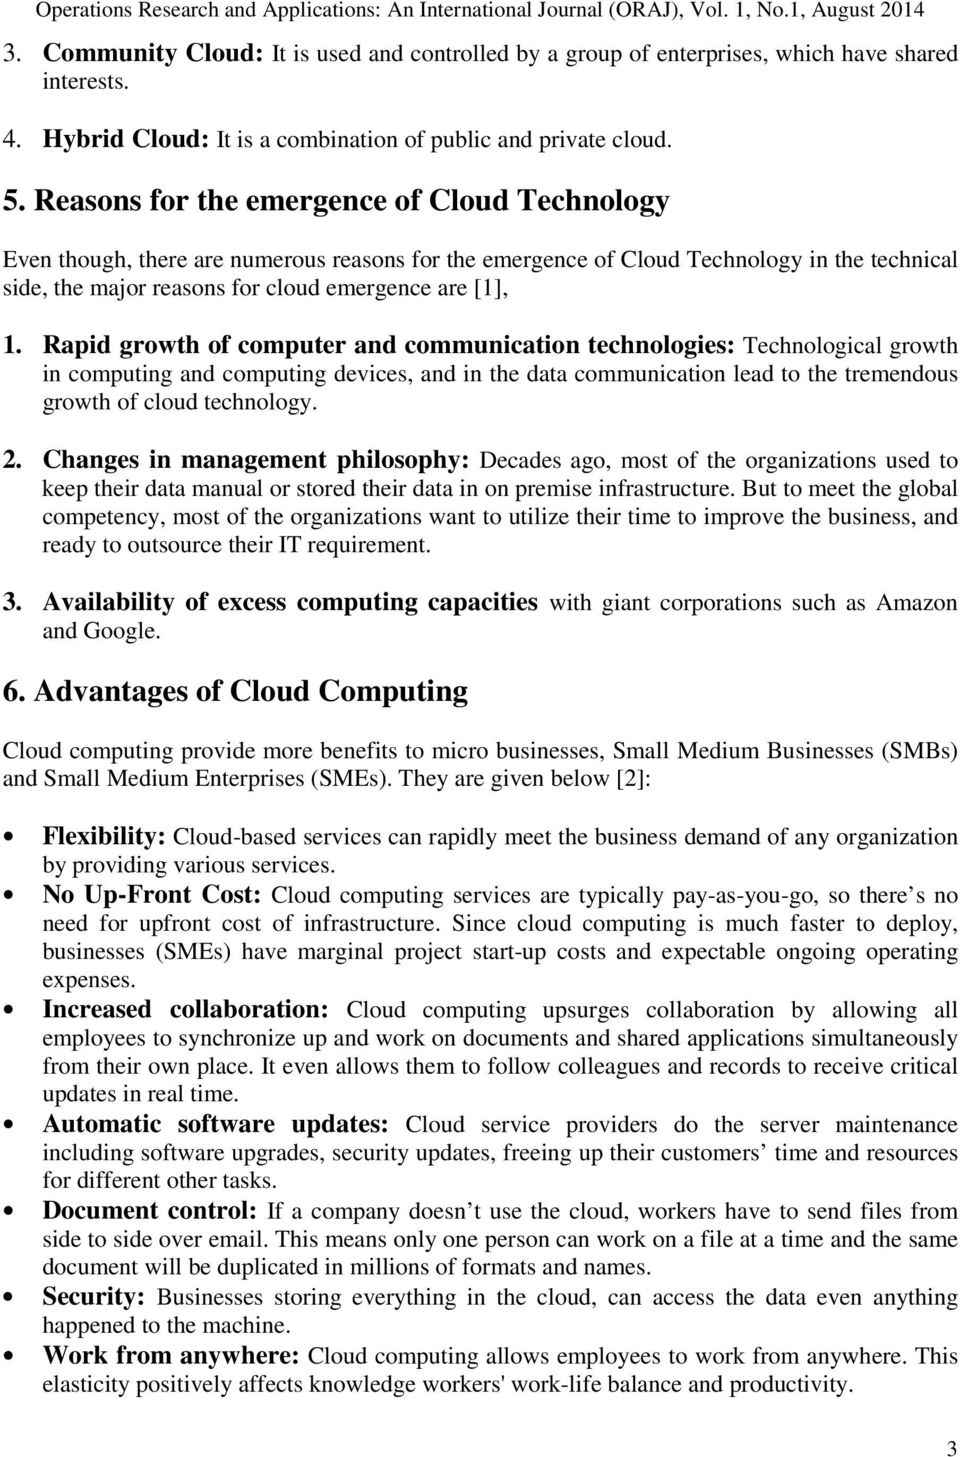 Rapid growth of computer and communication technologies: Technological growth in computing and computing devices, and in the data communication lead to the tremendous growth of cloud technology. 2.